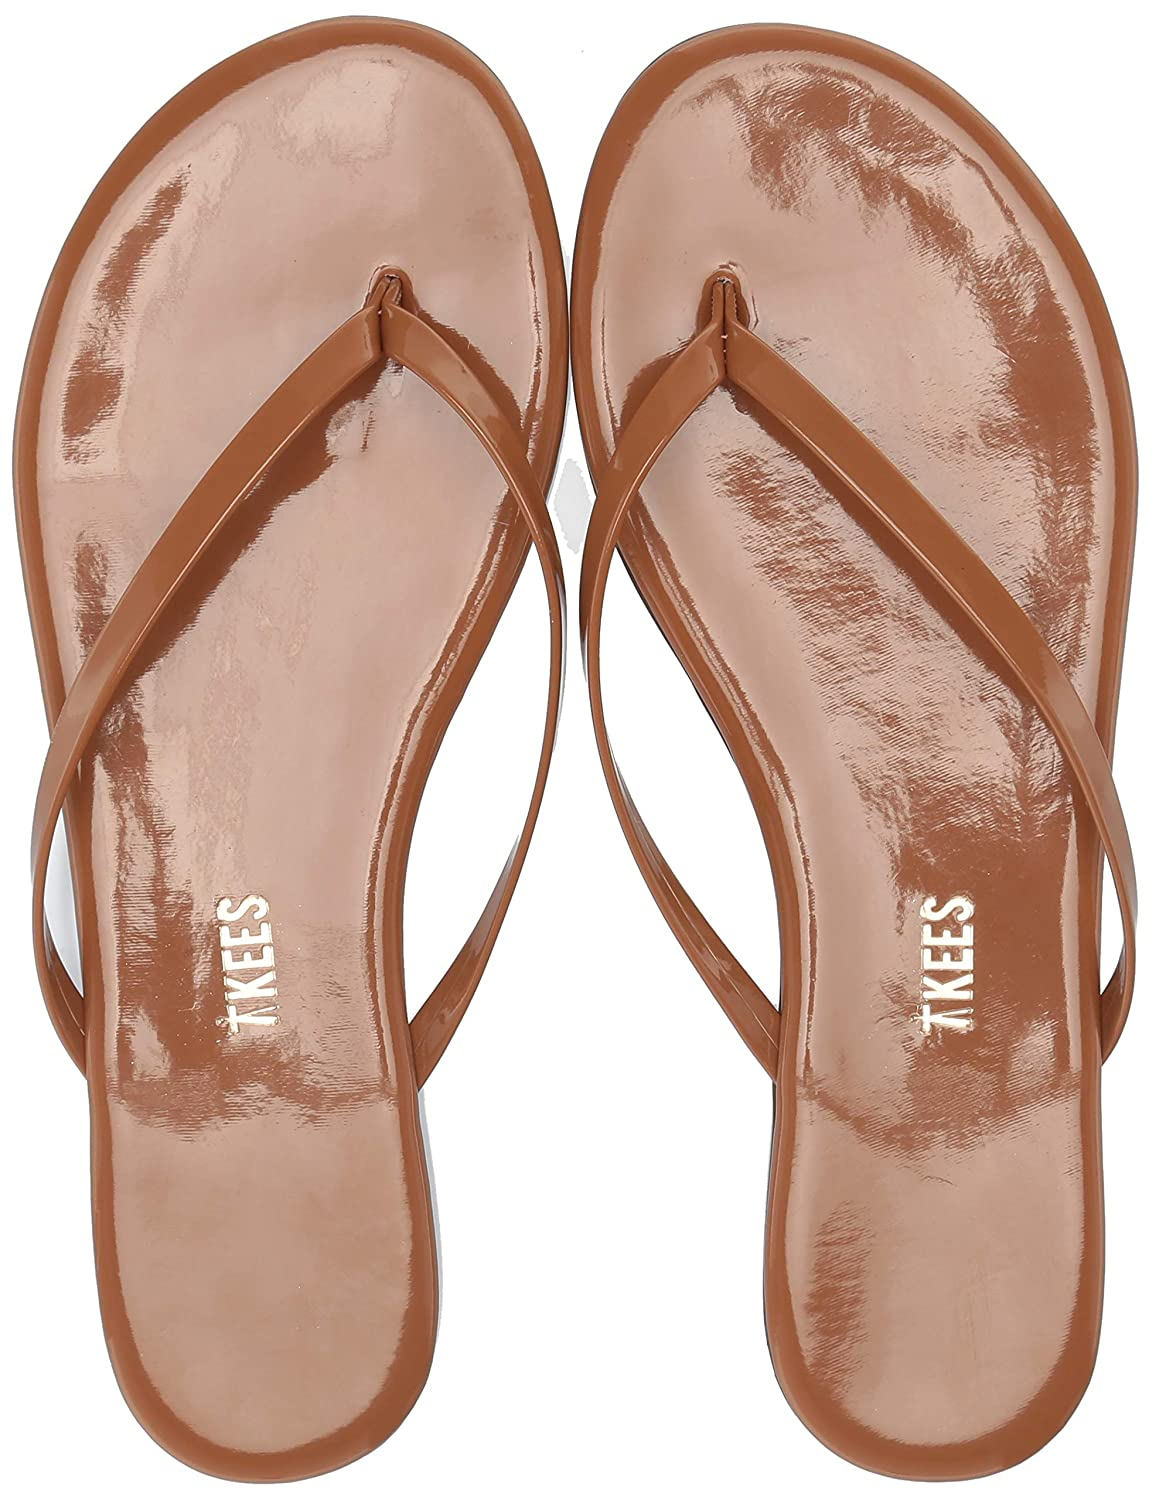 aad18214f Amazon.com  TKEES Women s Foundations Glosses Flip Flops  Shoes